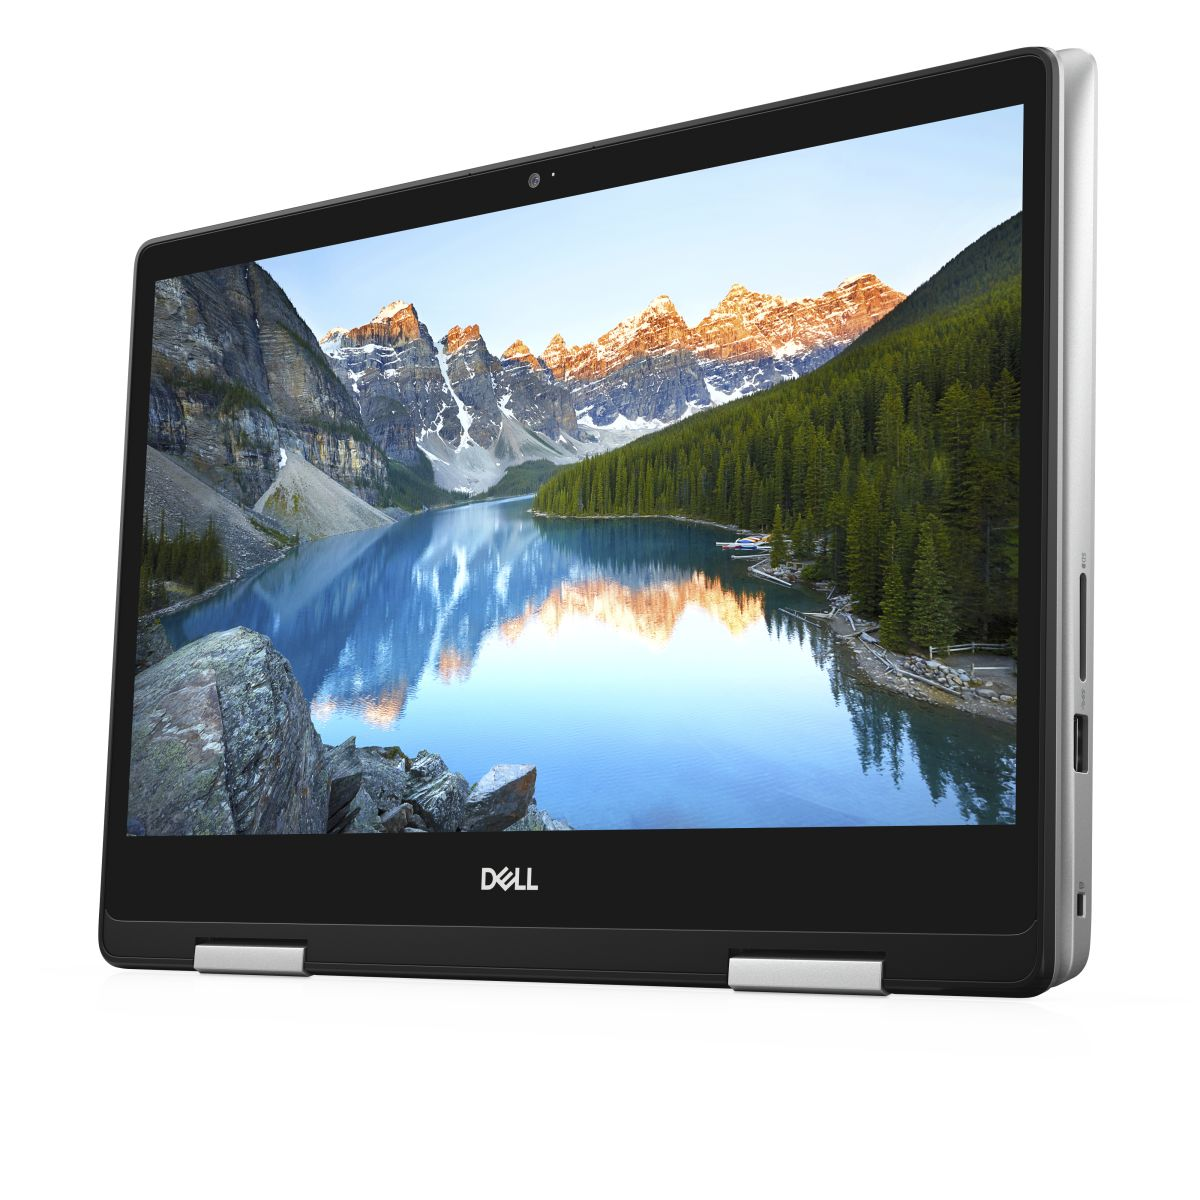 Dell Inspiron 15 5491-INS-2034 2in1 Notebook, Intel Core i3-10110U, 4GB RAM, 256GB SSD, 14 Inches Touch Display, Intel CML-U UMA, Windows 10 Home, Silver